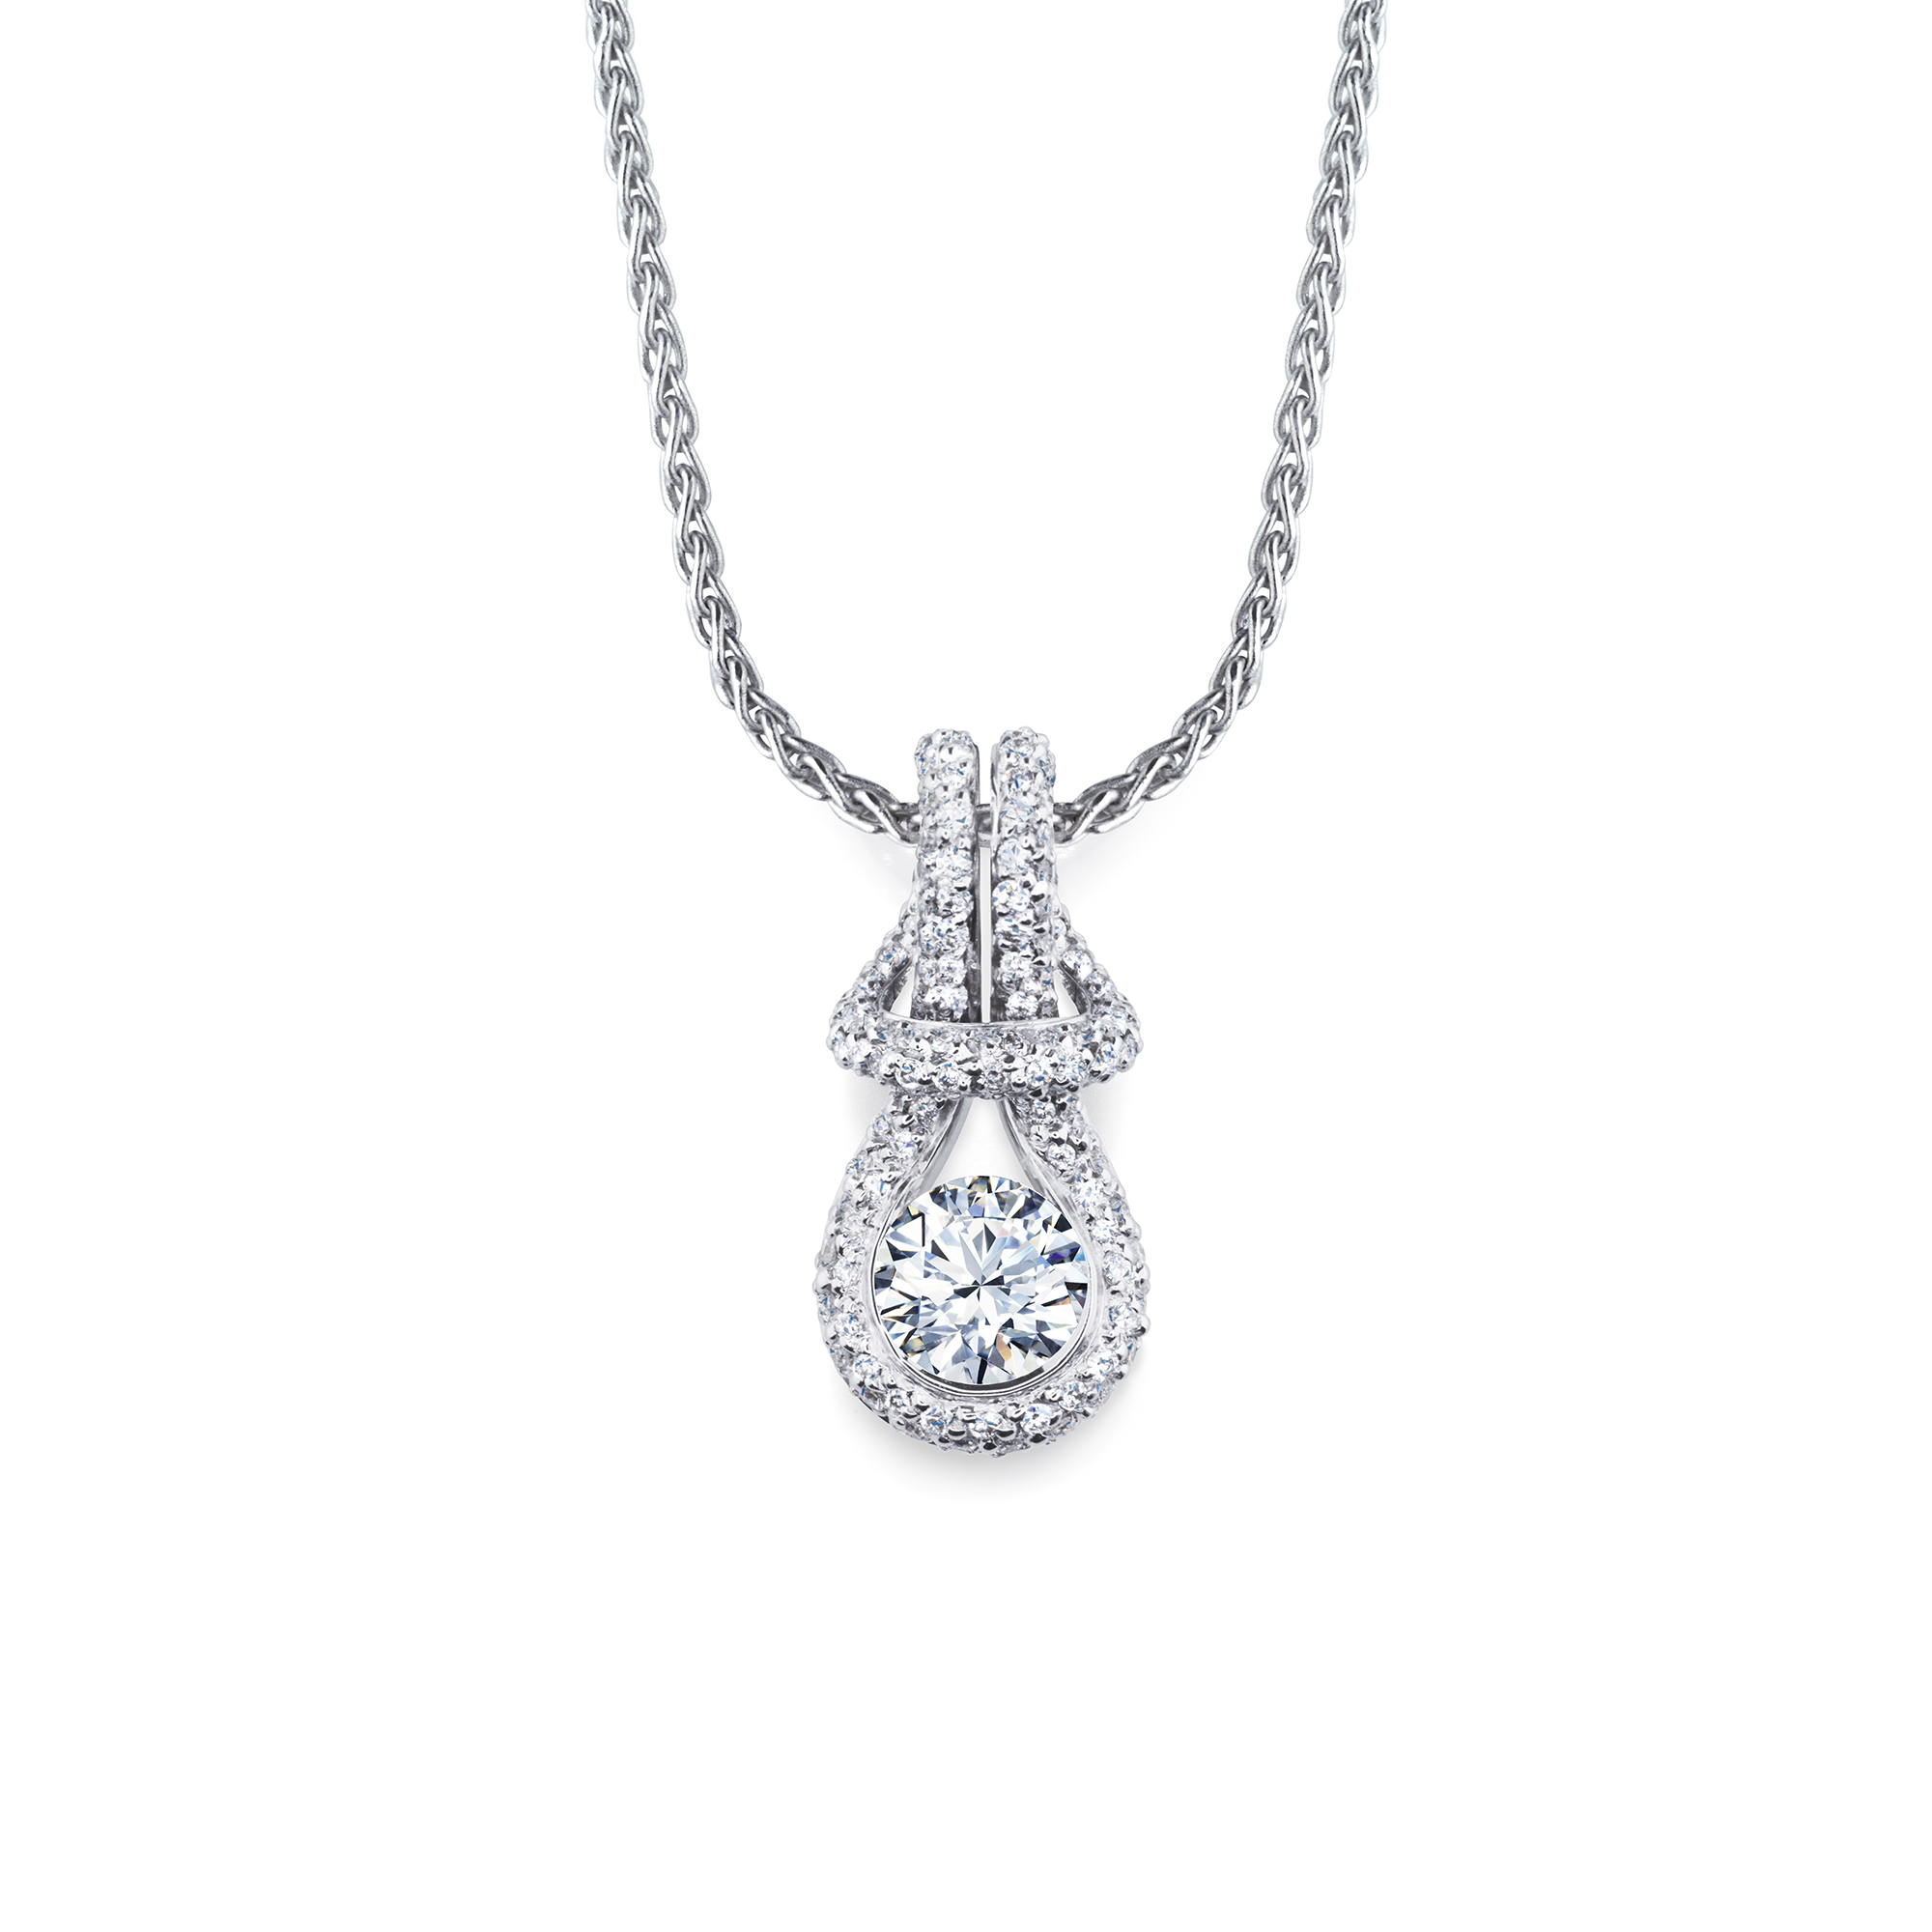 princess cut diamond at rsp johnlewis necklace gold pendant white pdp main solitaire mogul buymogul online